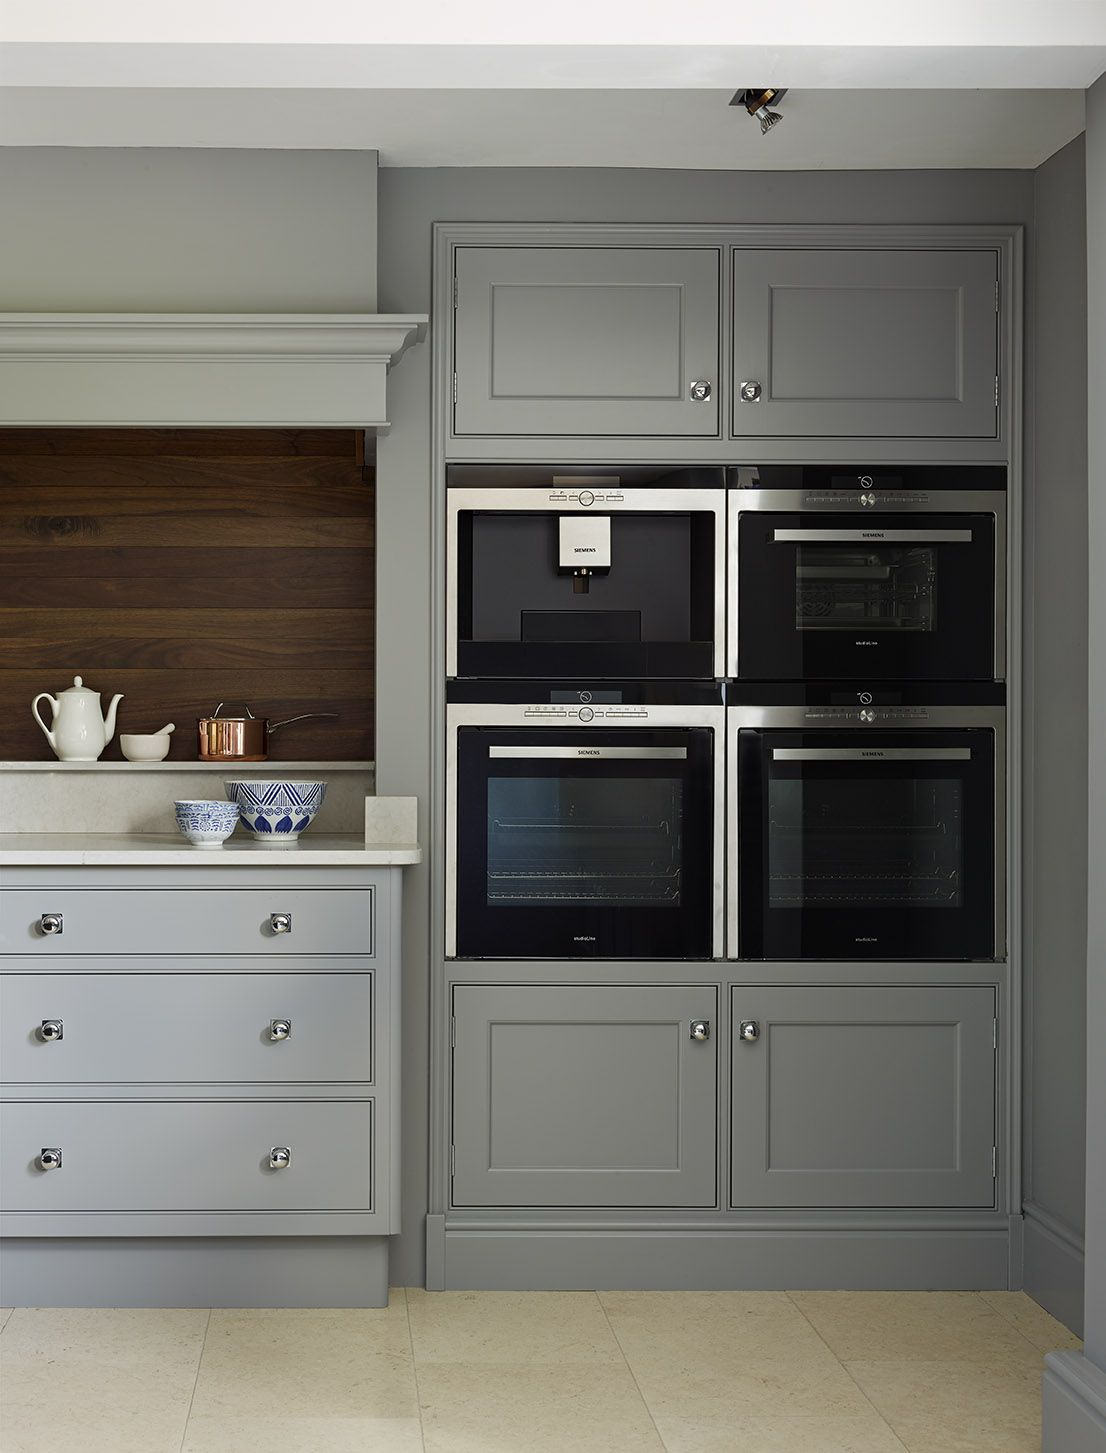 Our large kitchen showroom in Elland, features an